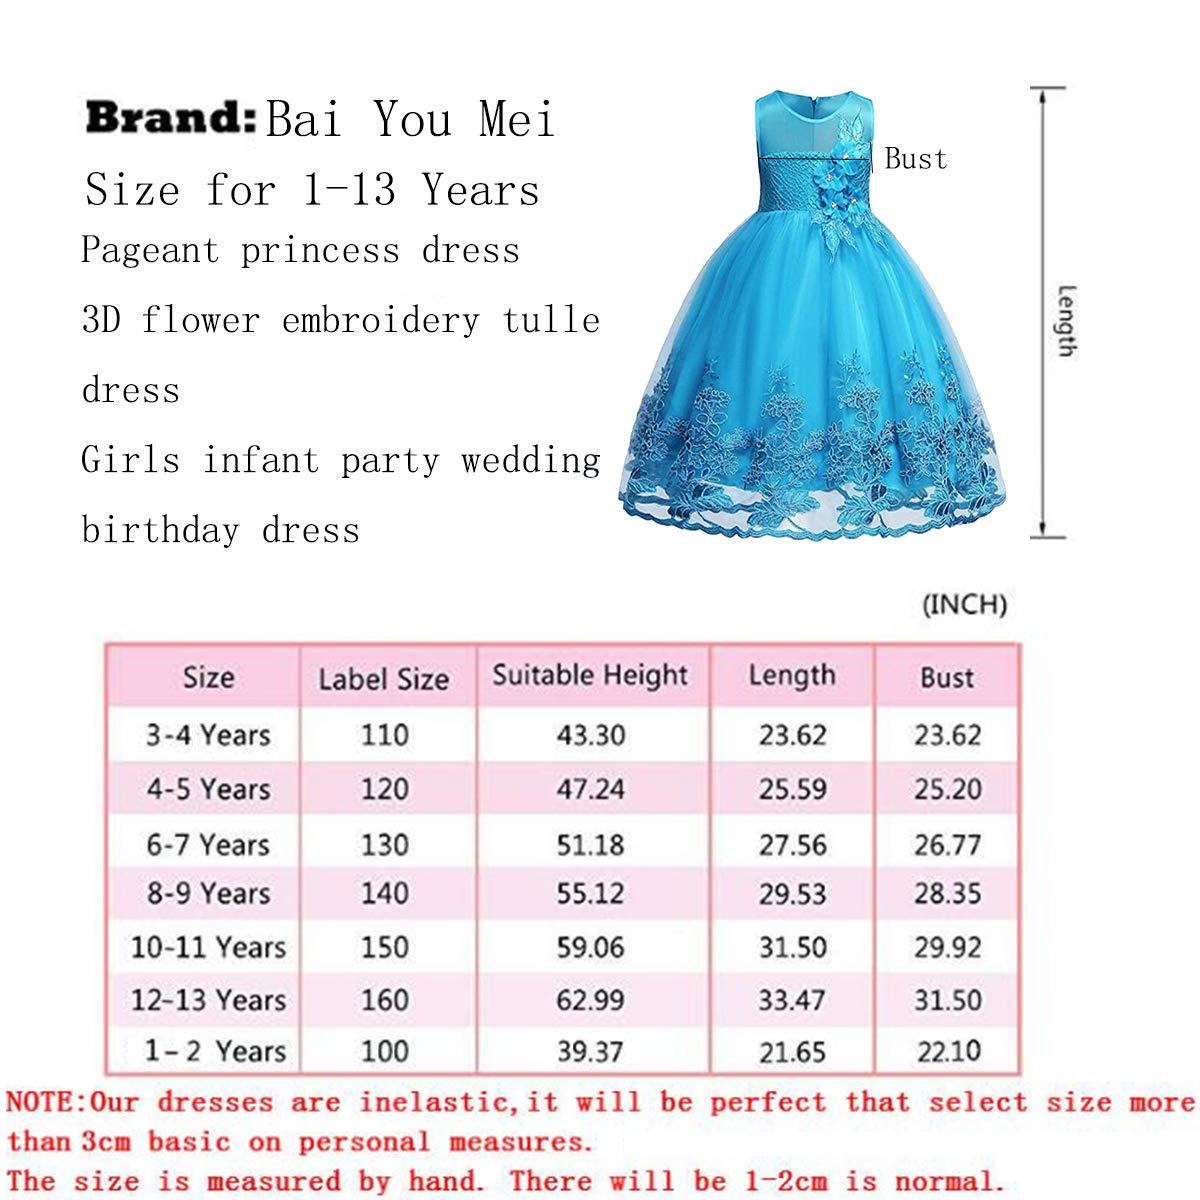 Bai You Mei Girl Sleeveless Wedding Party 3D Embroidered Flower Dresses